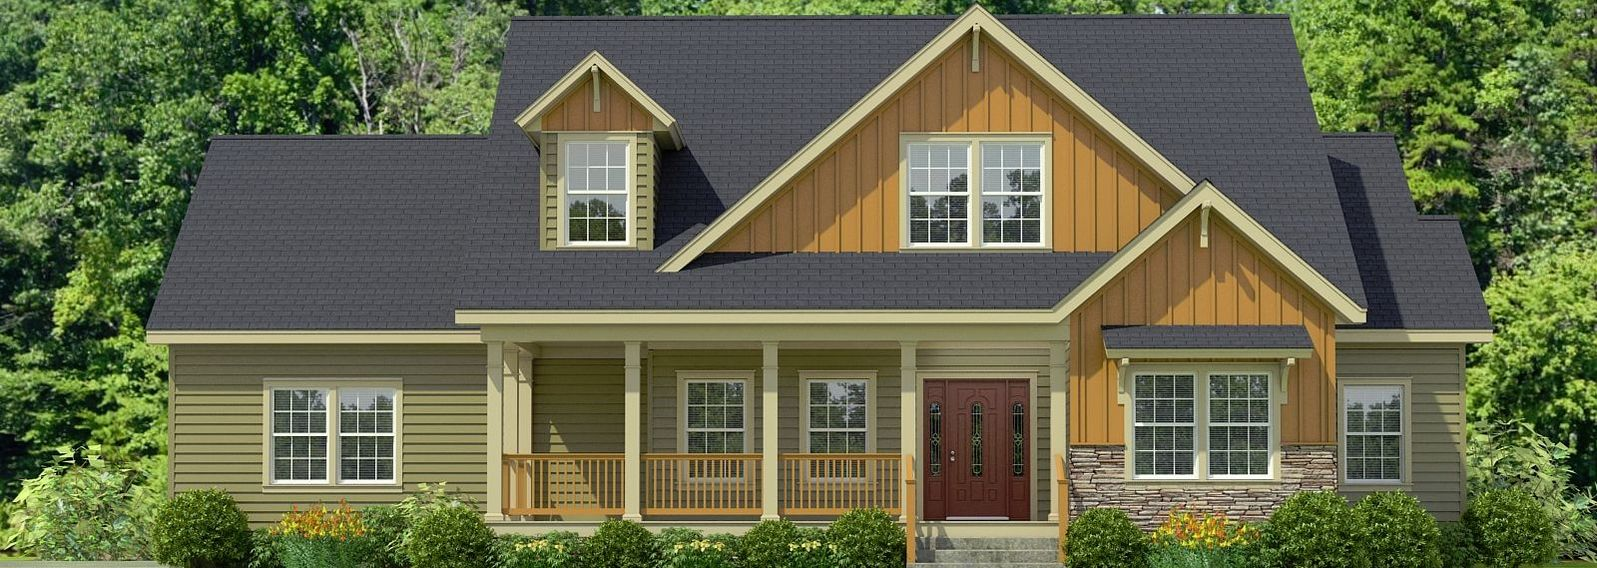 This Cape Cod Style Modular Home Comes with New Exciting Features - Greensboro, NC